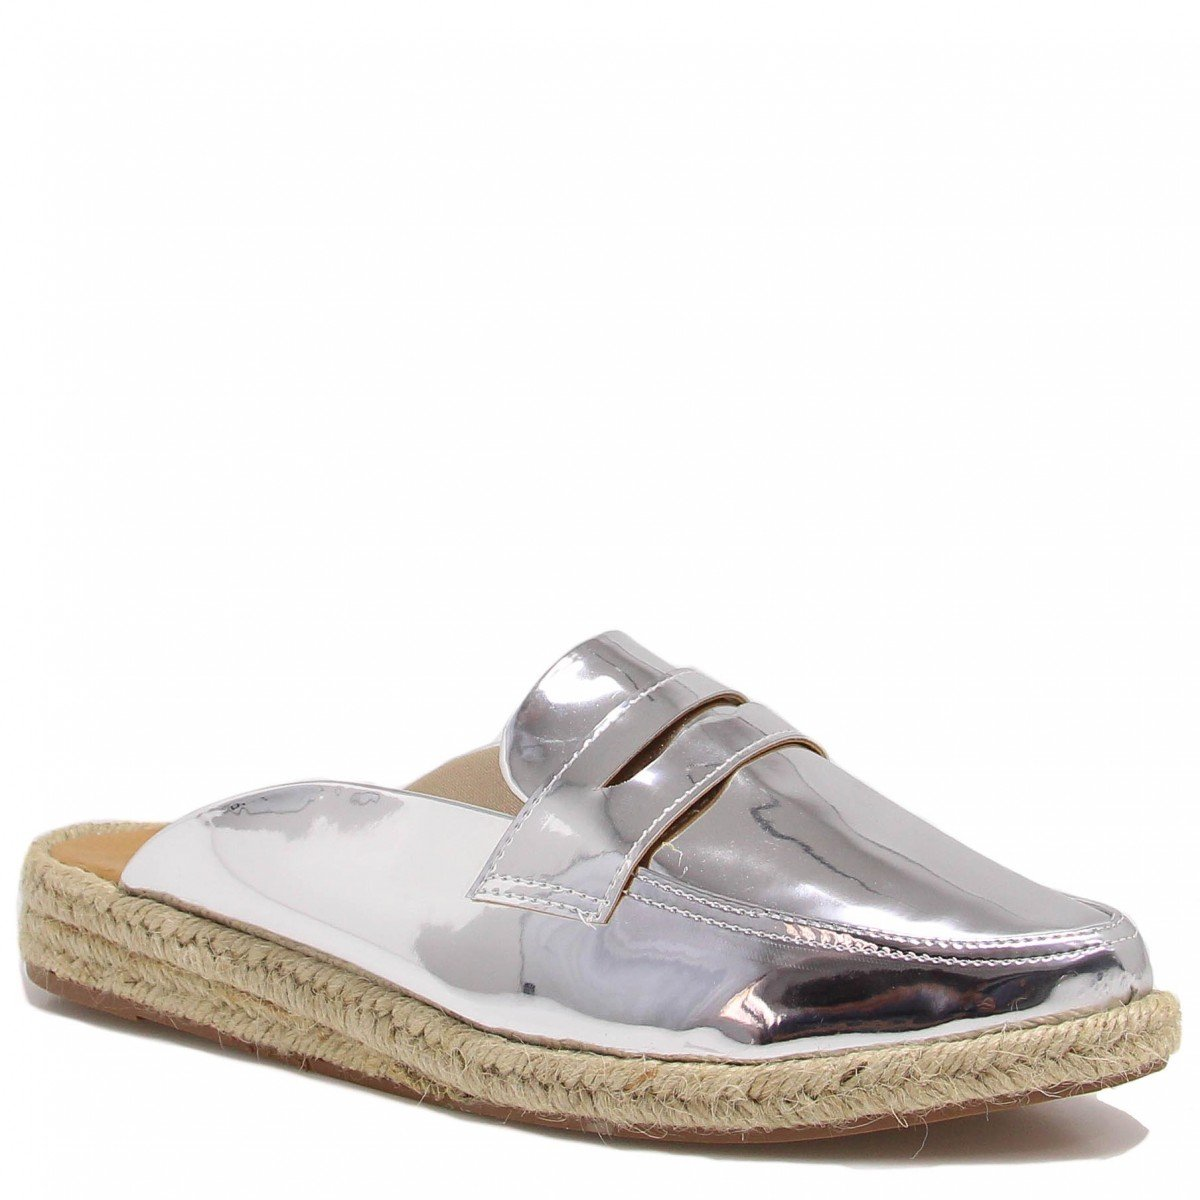 Mule Flat Zariff Shoes Loafer Espadrille Prata